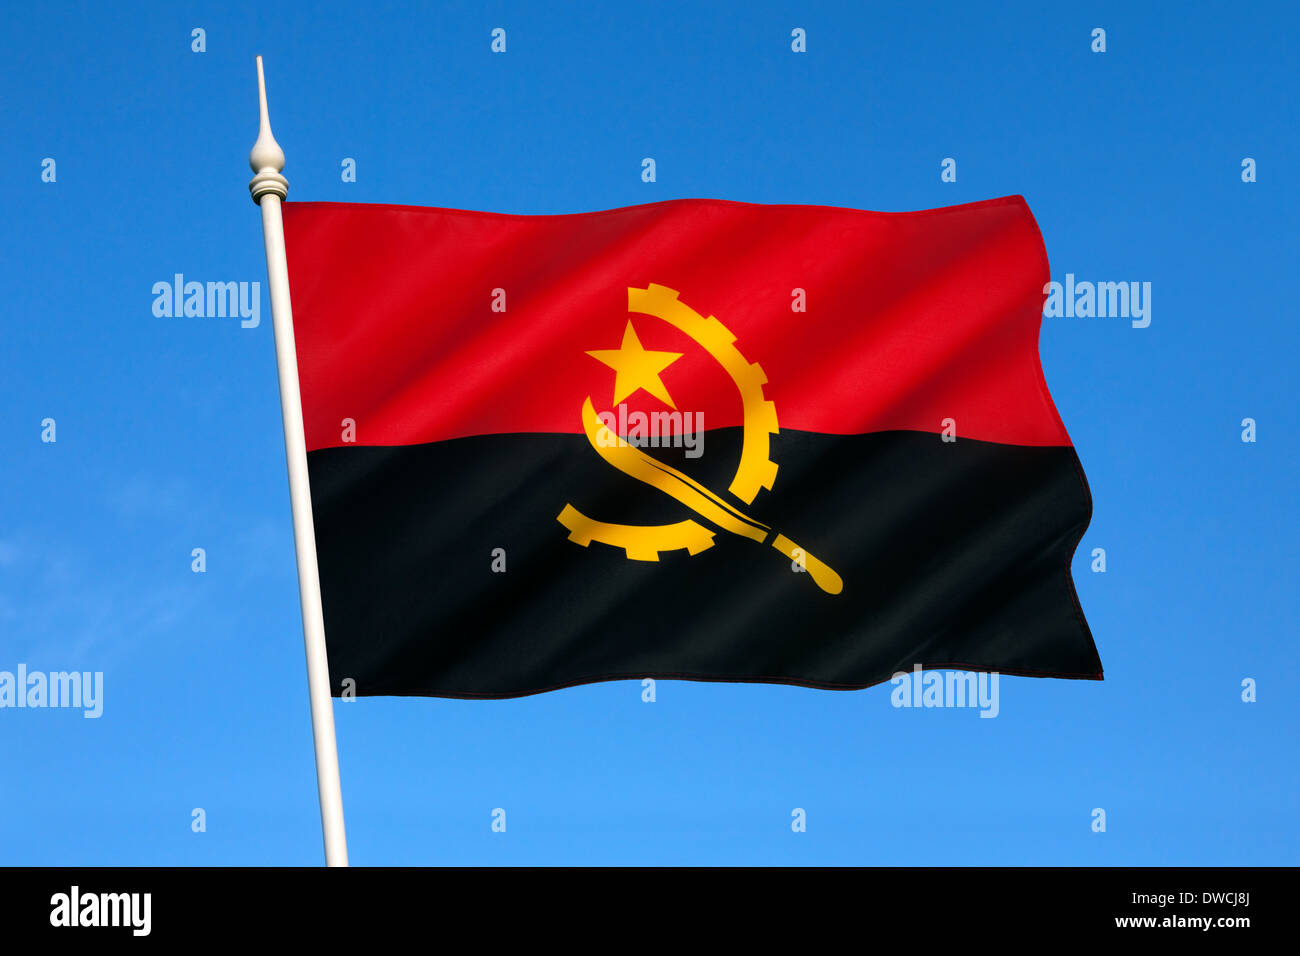 The national flag of Angola came into use at independence on November 11 1975. - Stock Image